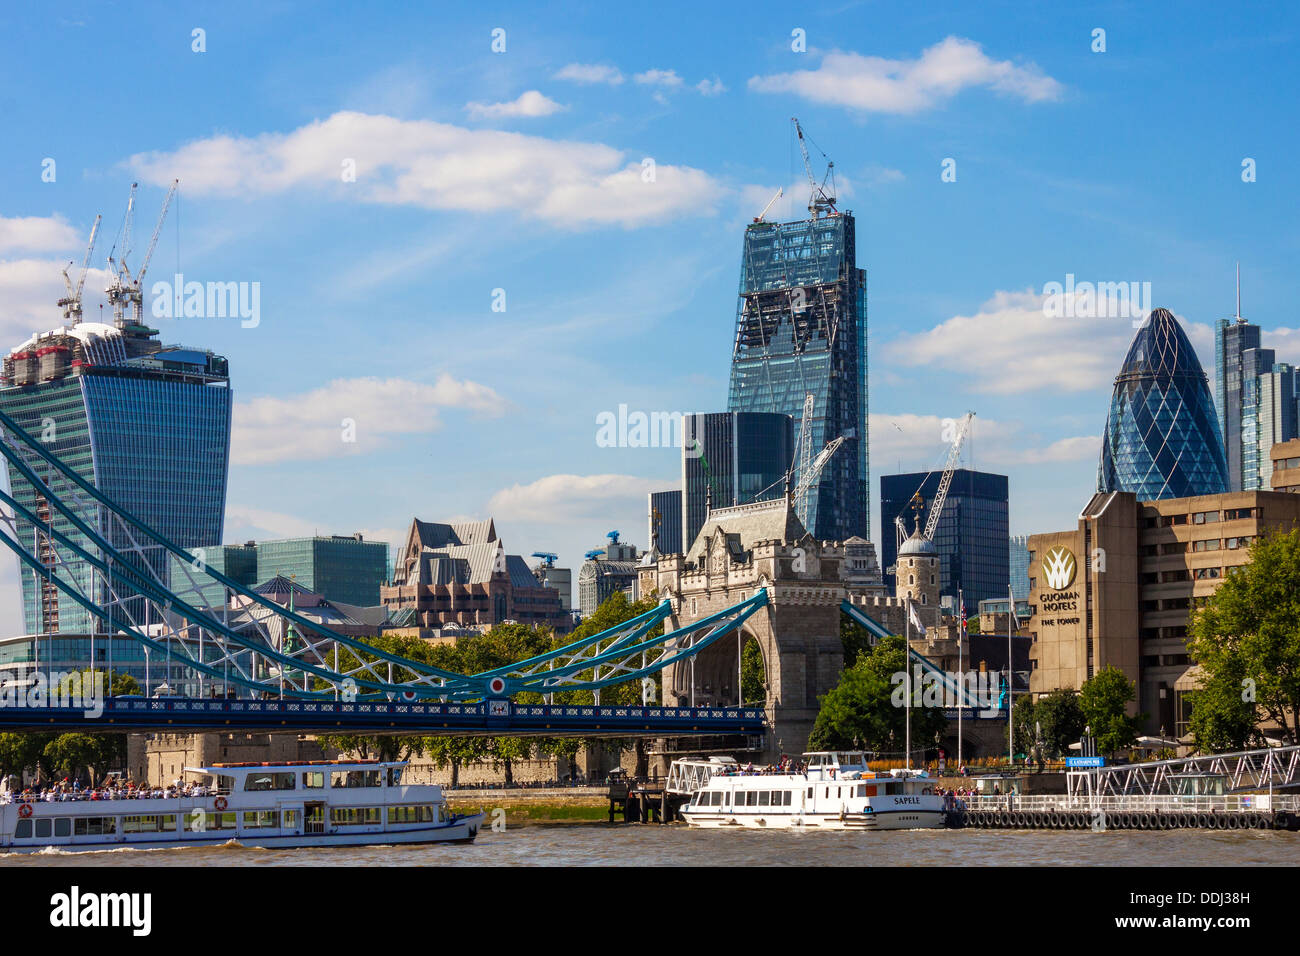 Tower Bridge and City of London from the Thames - Stock Image